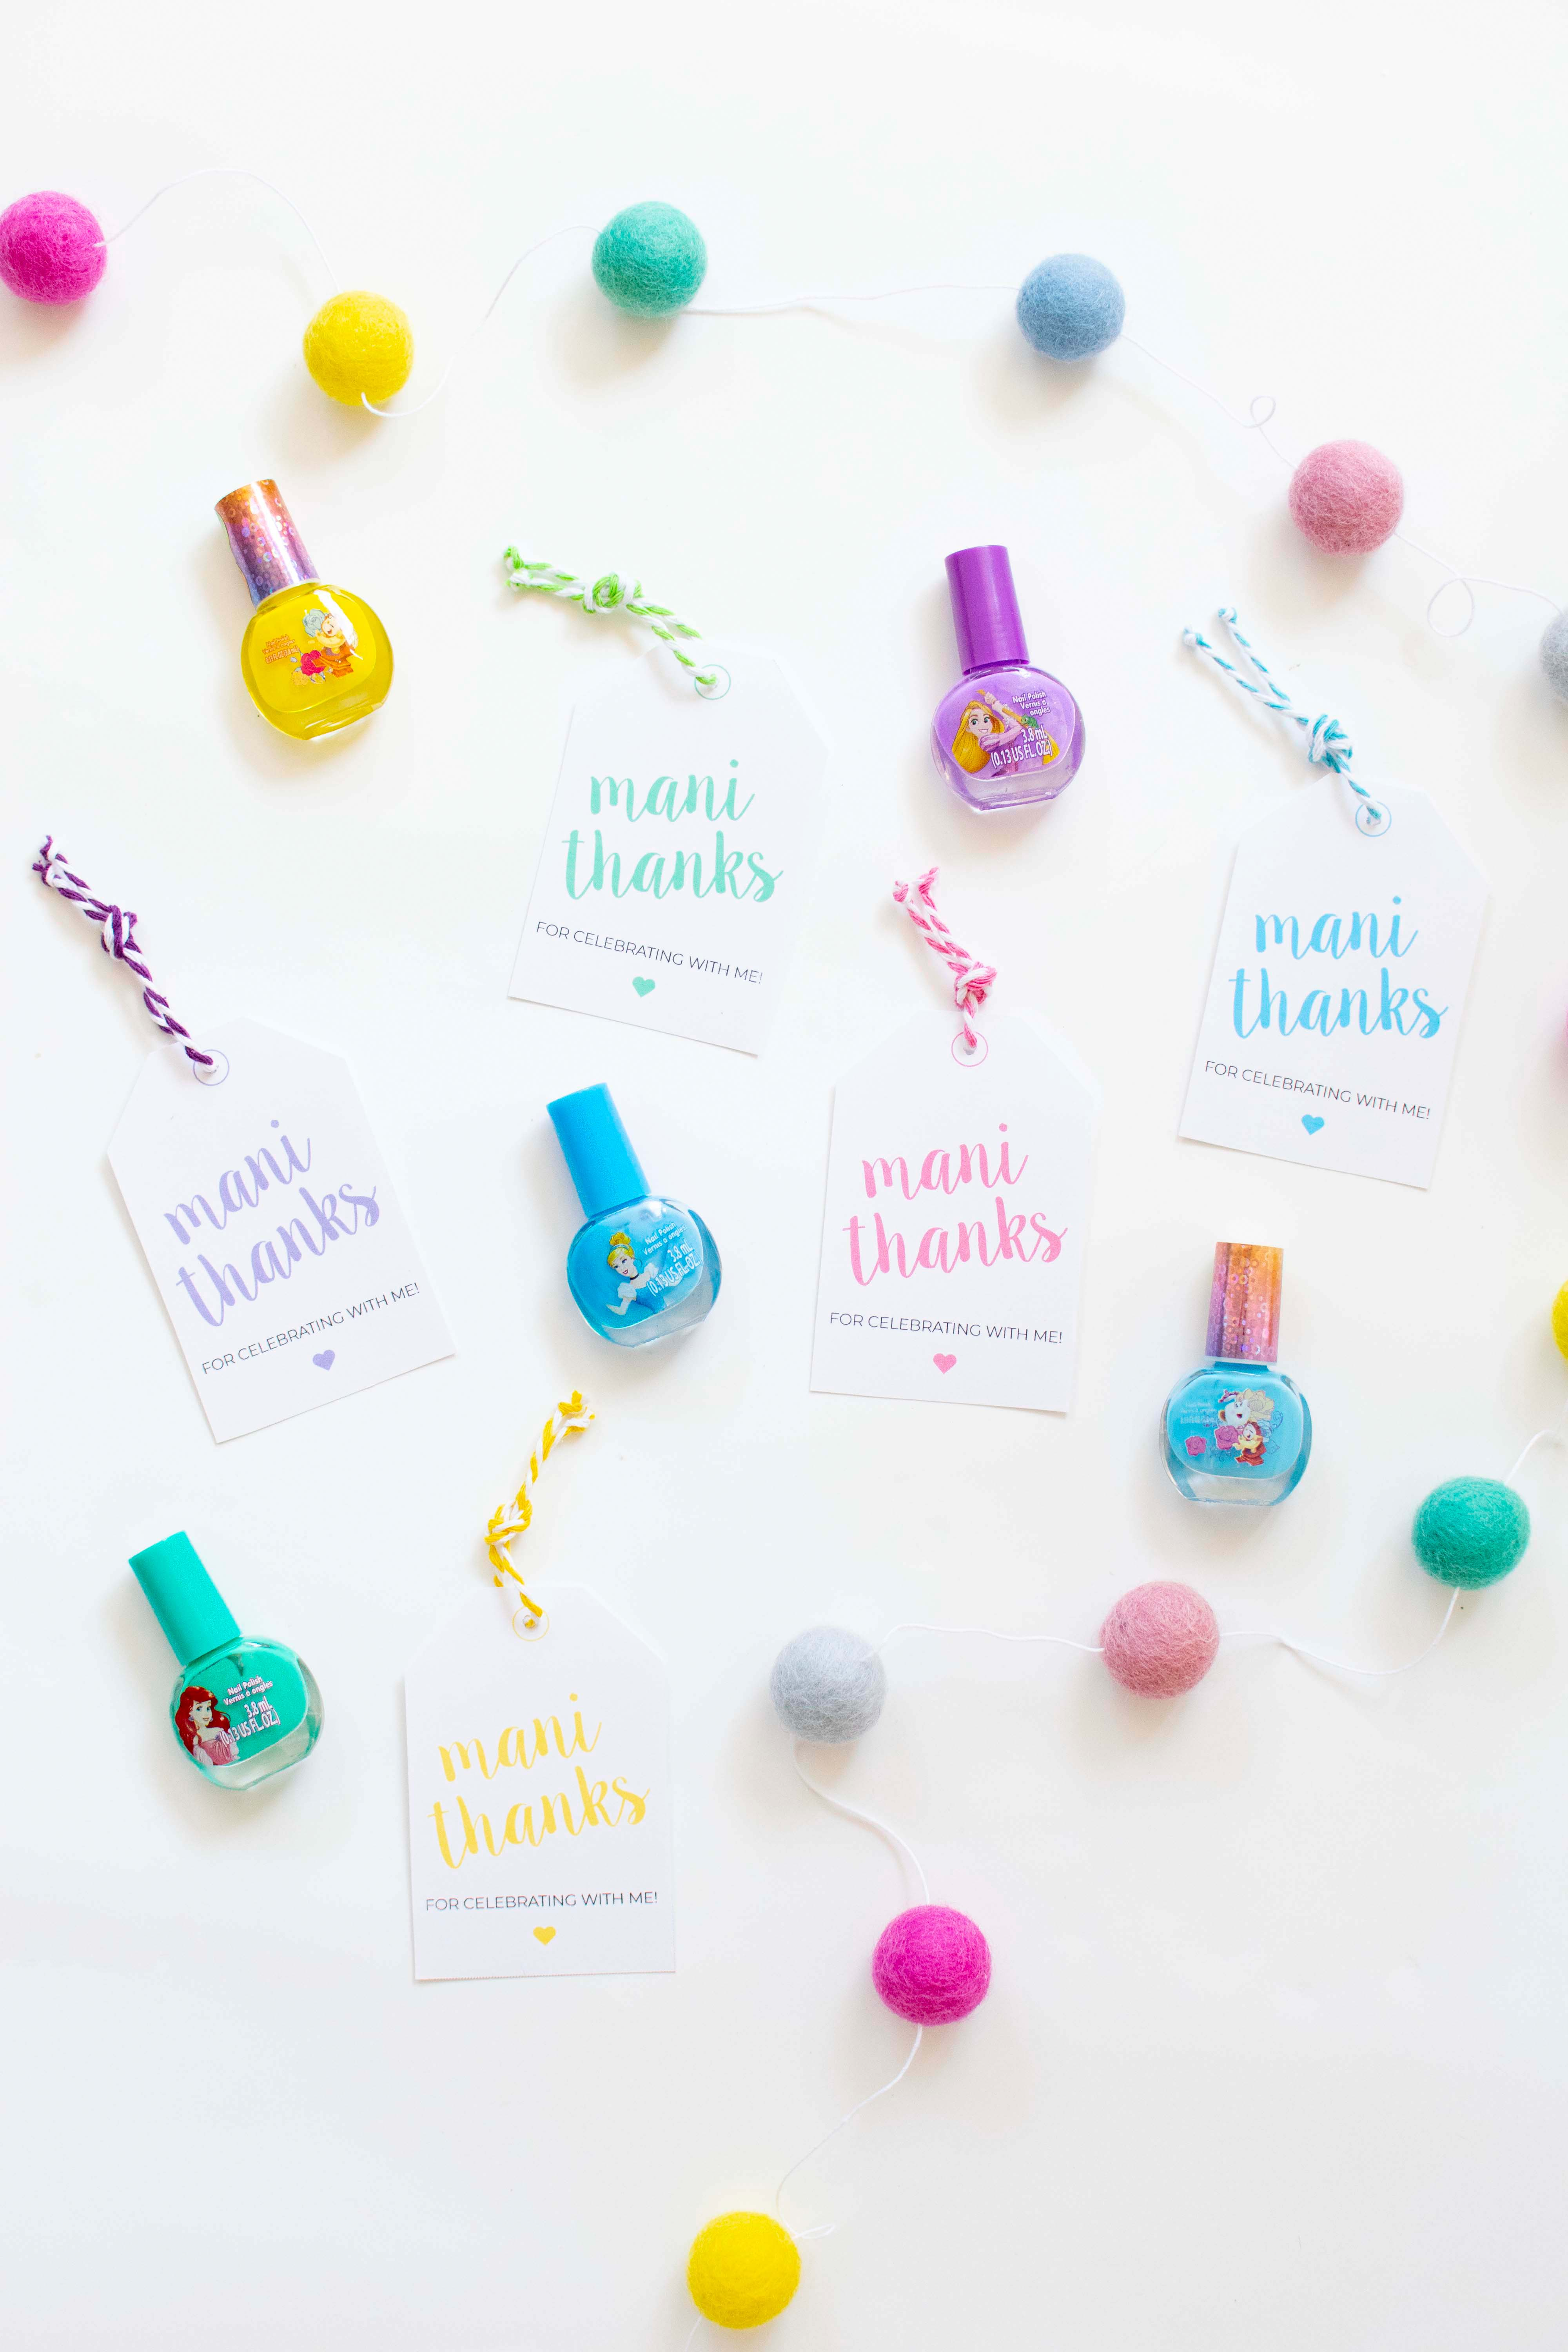 image about Mani Thanks Free Printable called Disney Princess Bash Favors + Absolutely free Printable Tags TownleyGirl